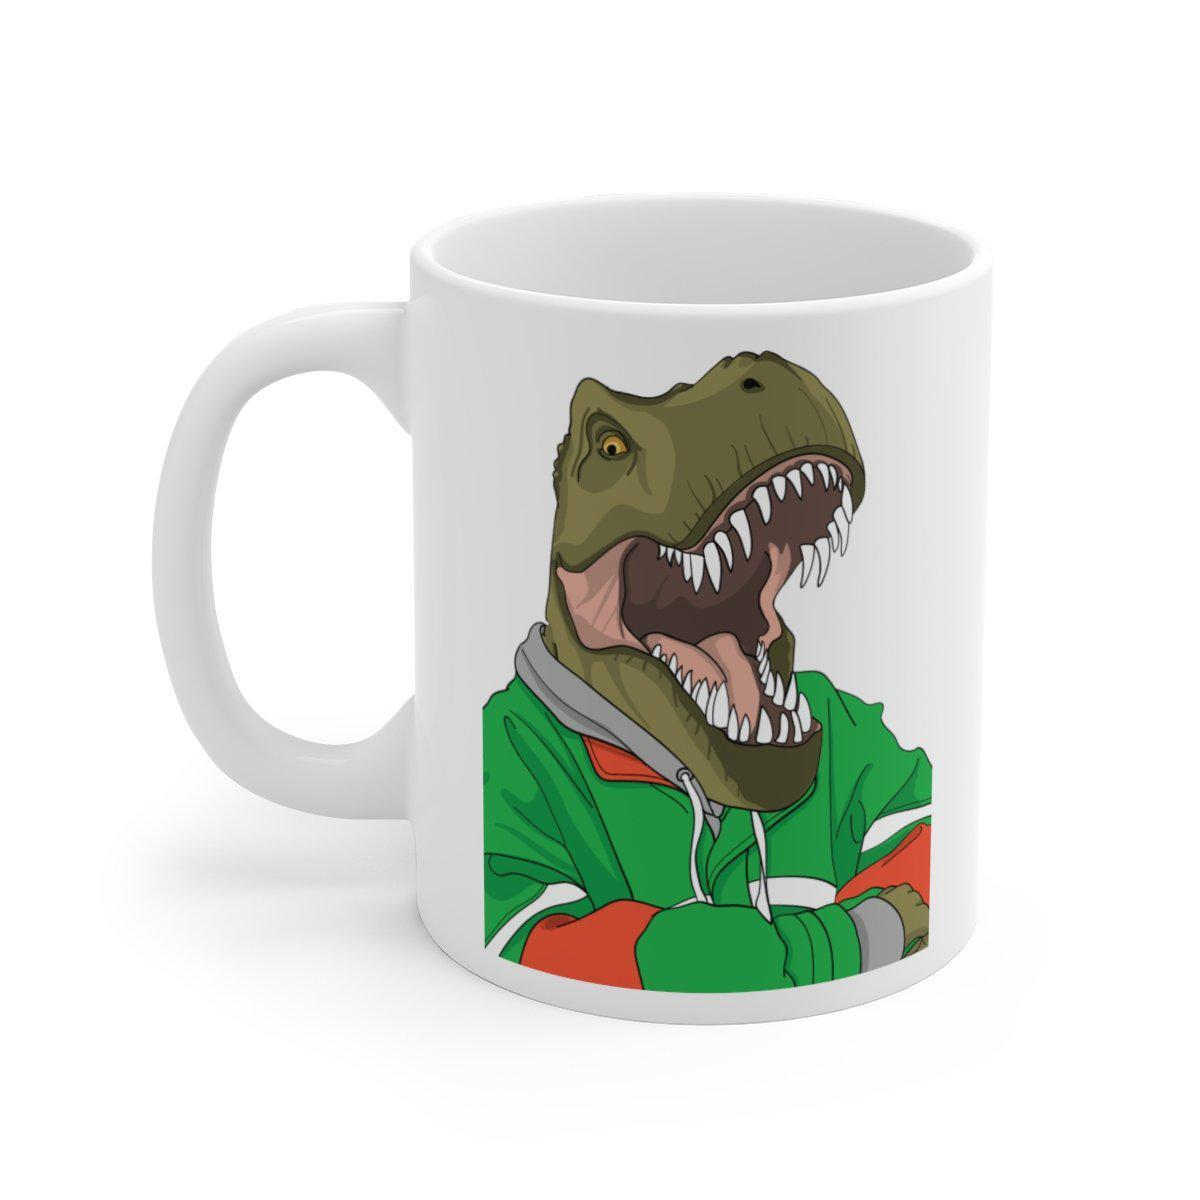 Dinosaur mug with t-rex wearing a green hoodie, crossing his arms, and relaxing.